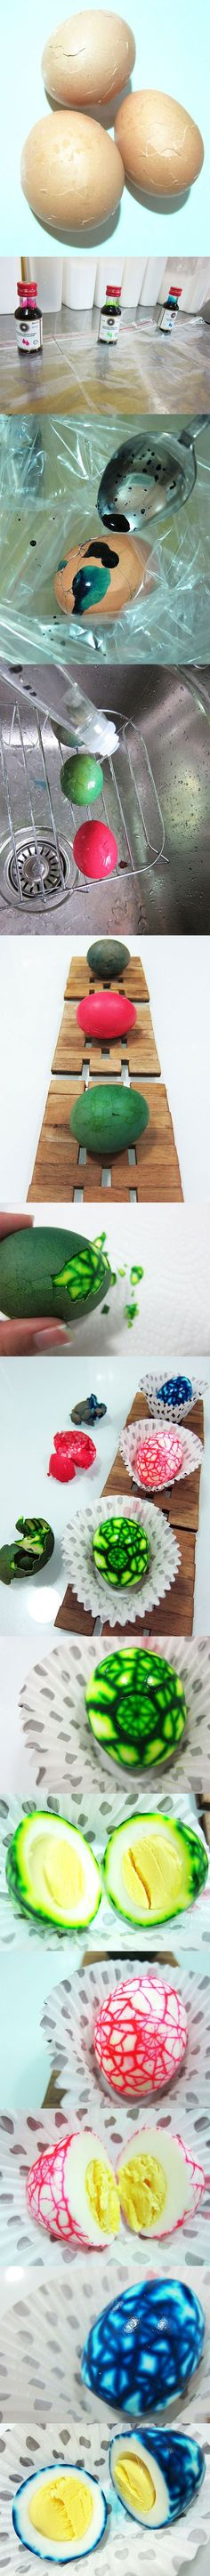 Yes I'm a nerd and still like dying eggs!!